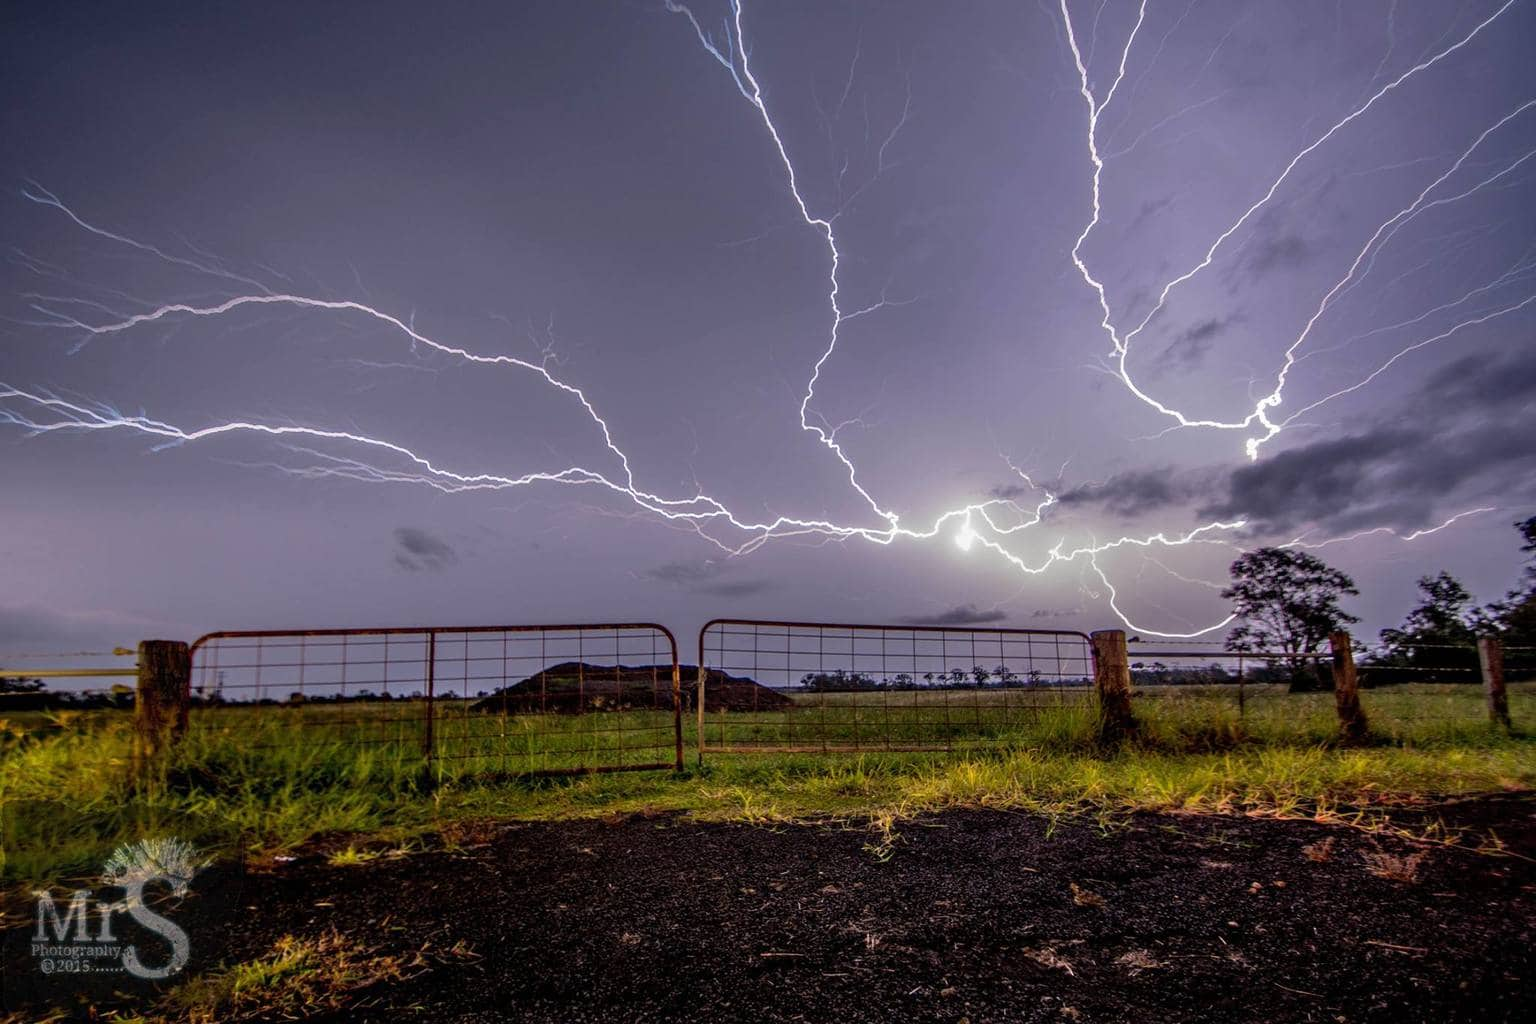 Well after chasing since midnight last night I finally caught this cell as it passed Rosewood Australia. The wind was annoying but I still got some cool shots.